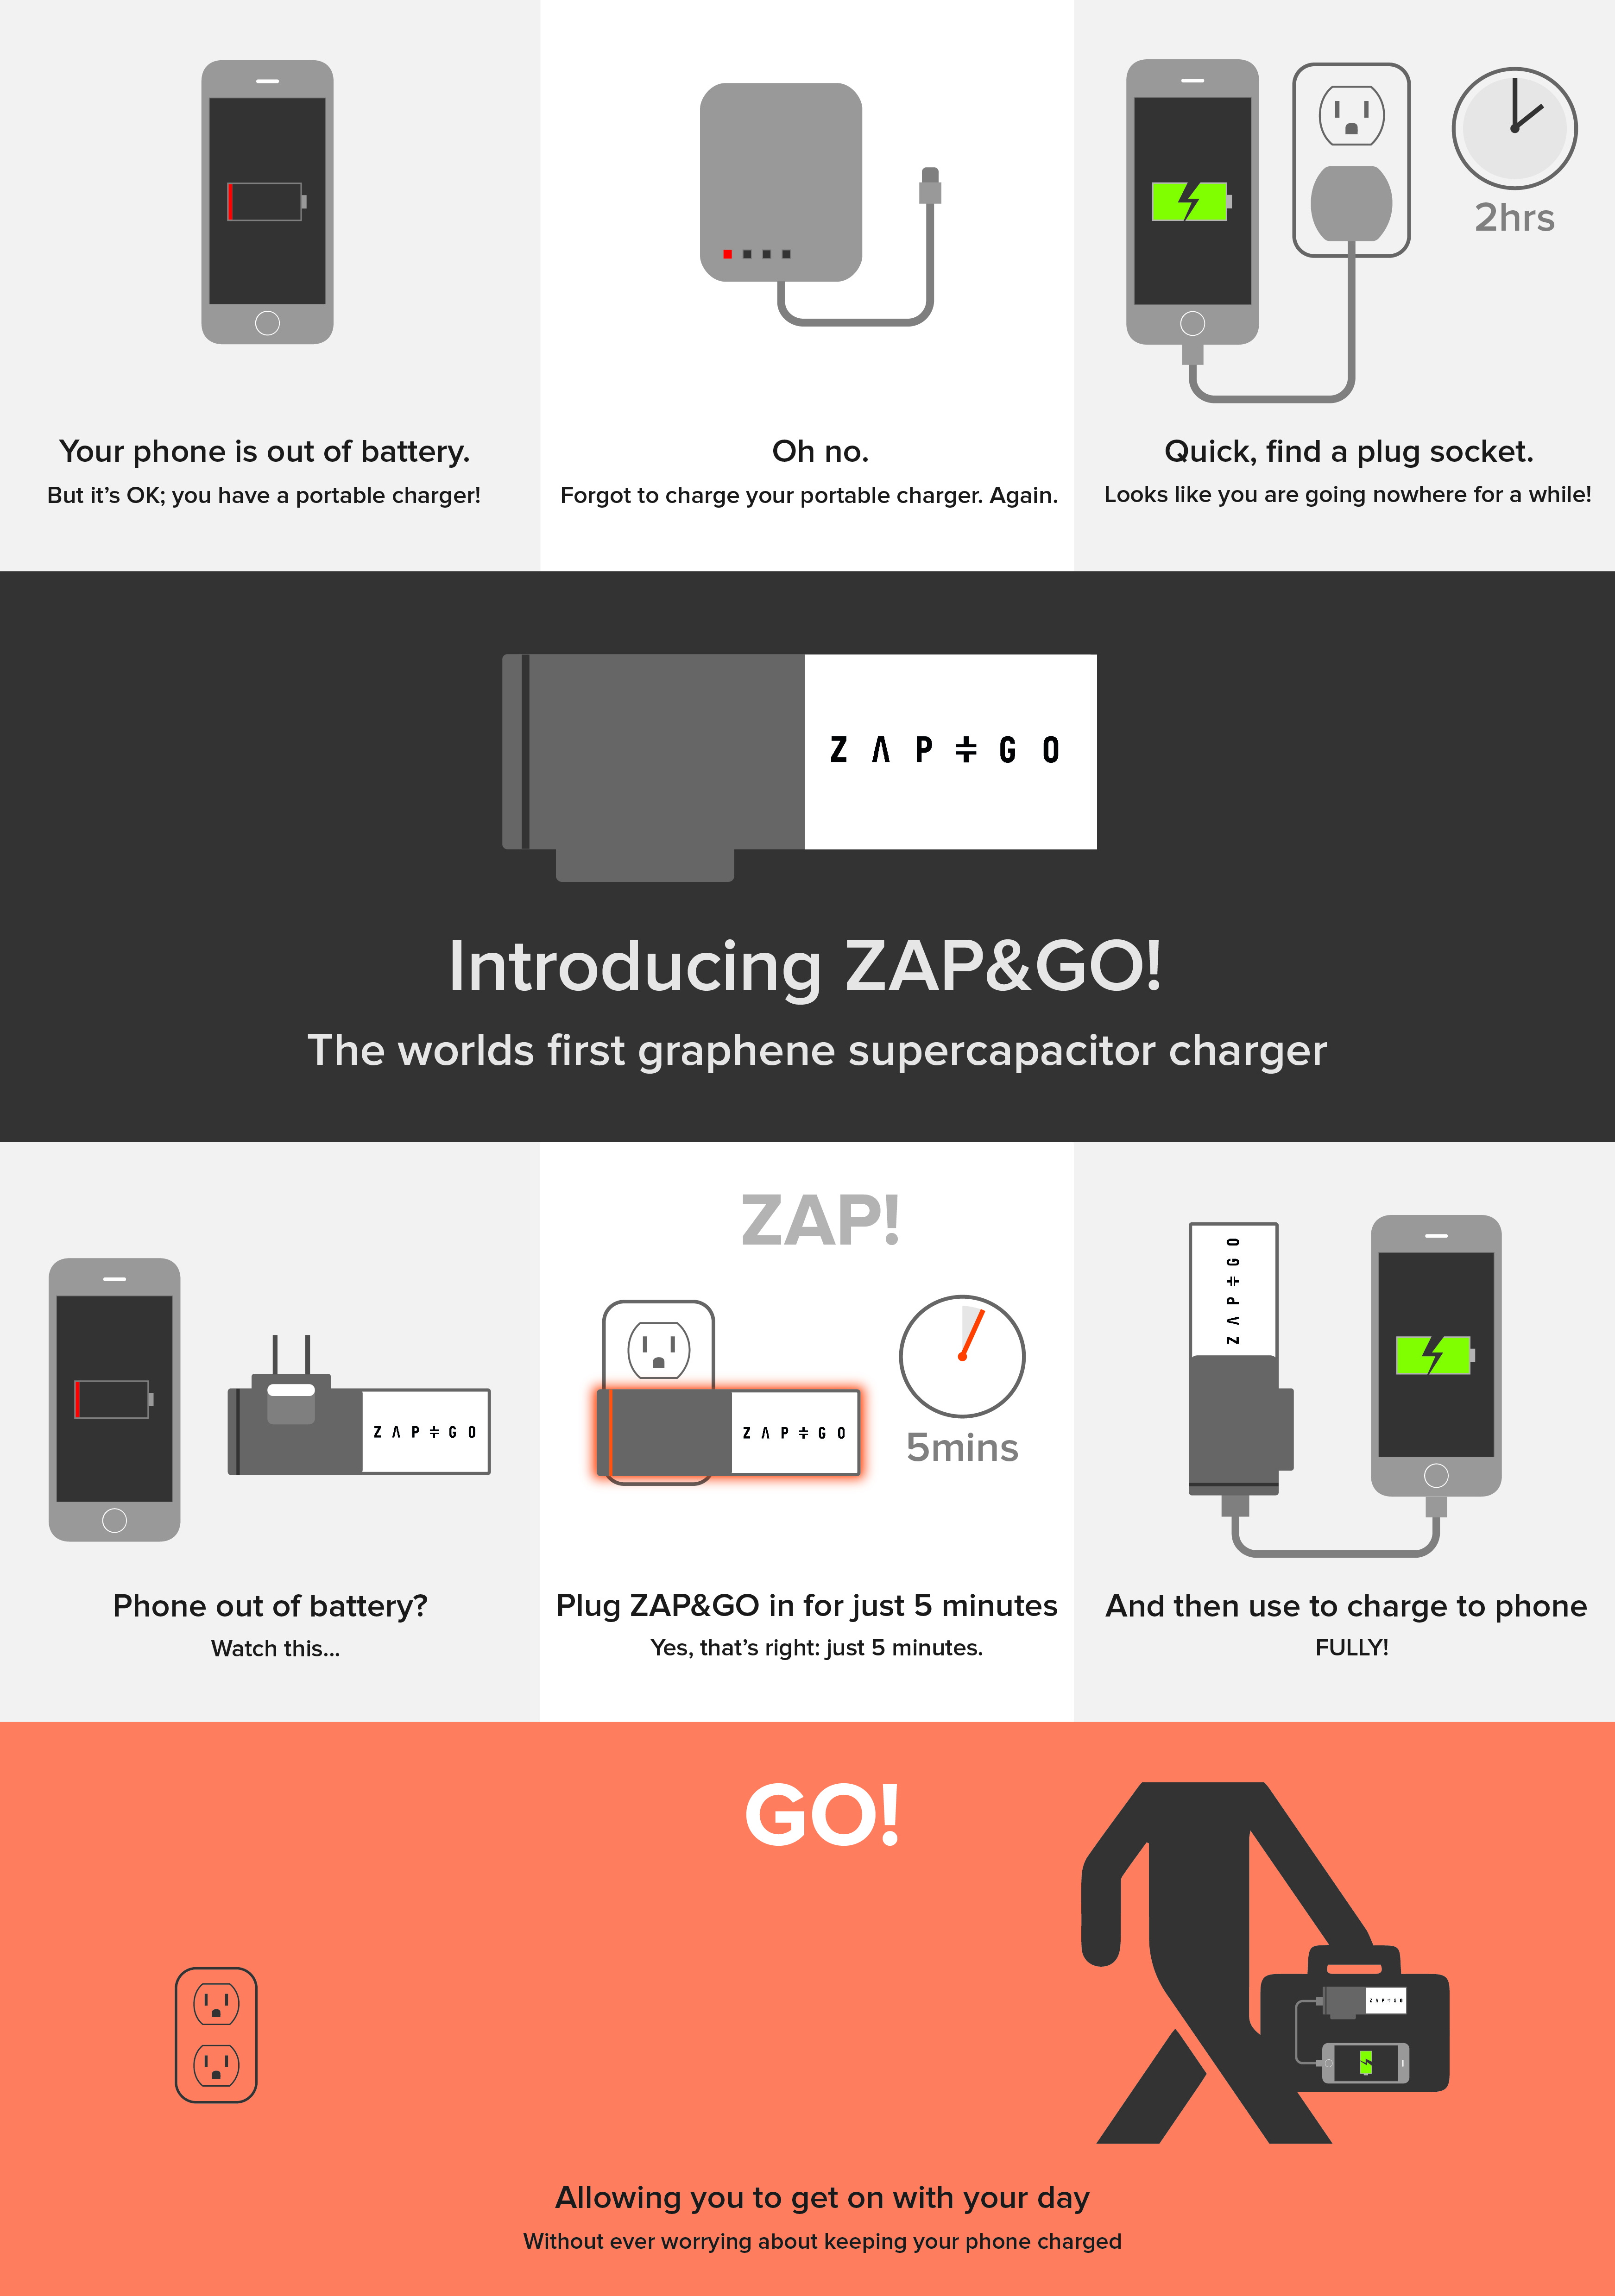 Zap&Go first graphene supercapacitor charger | Indiegogo